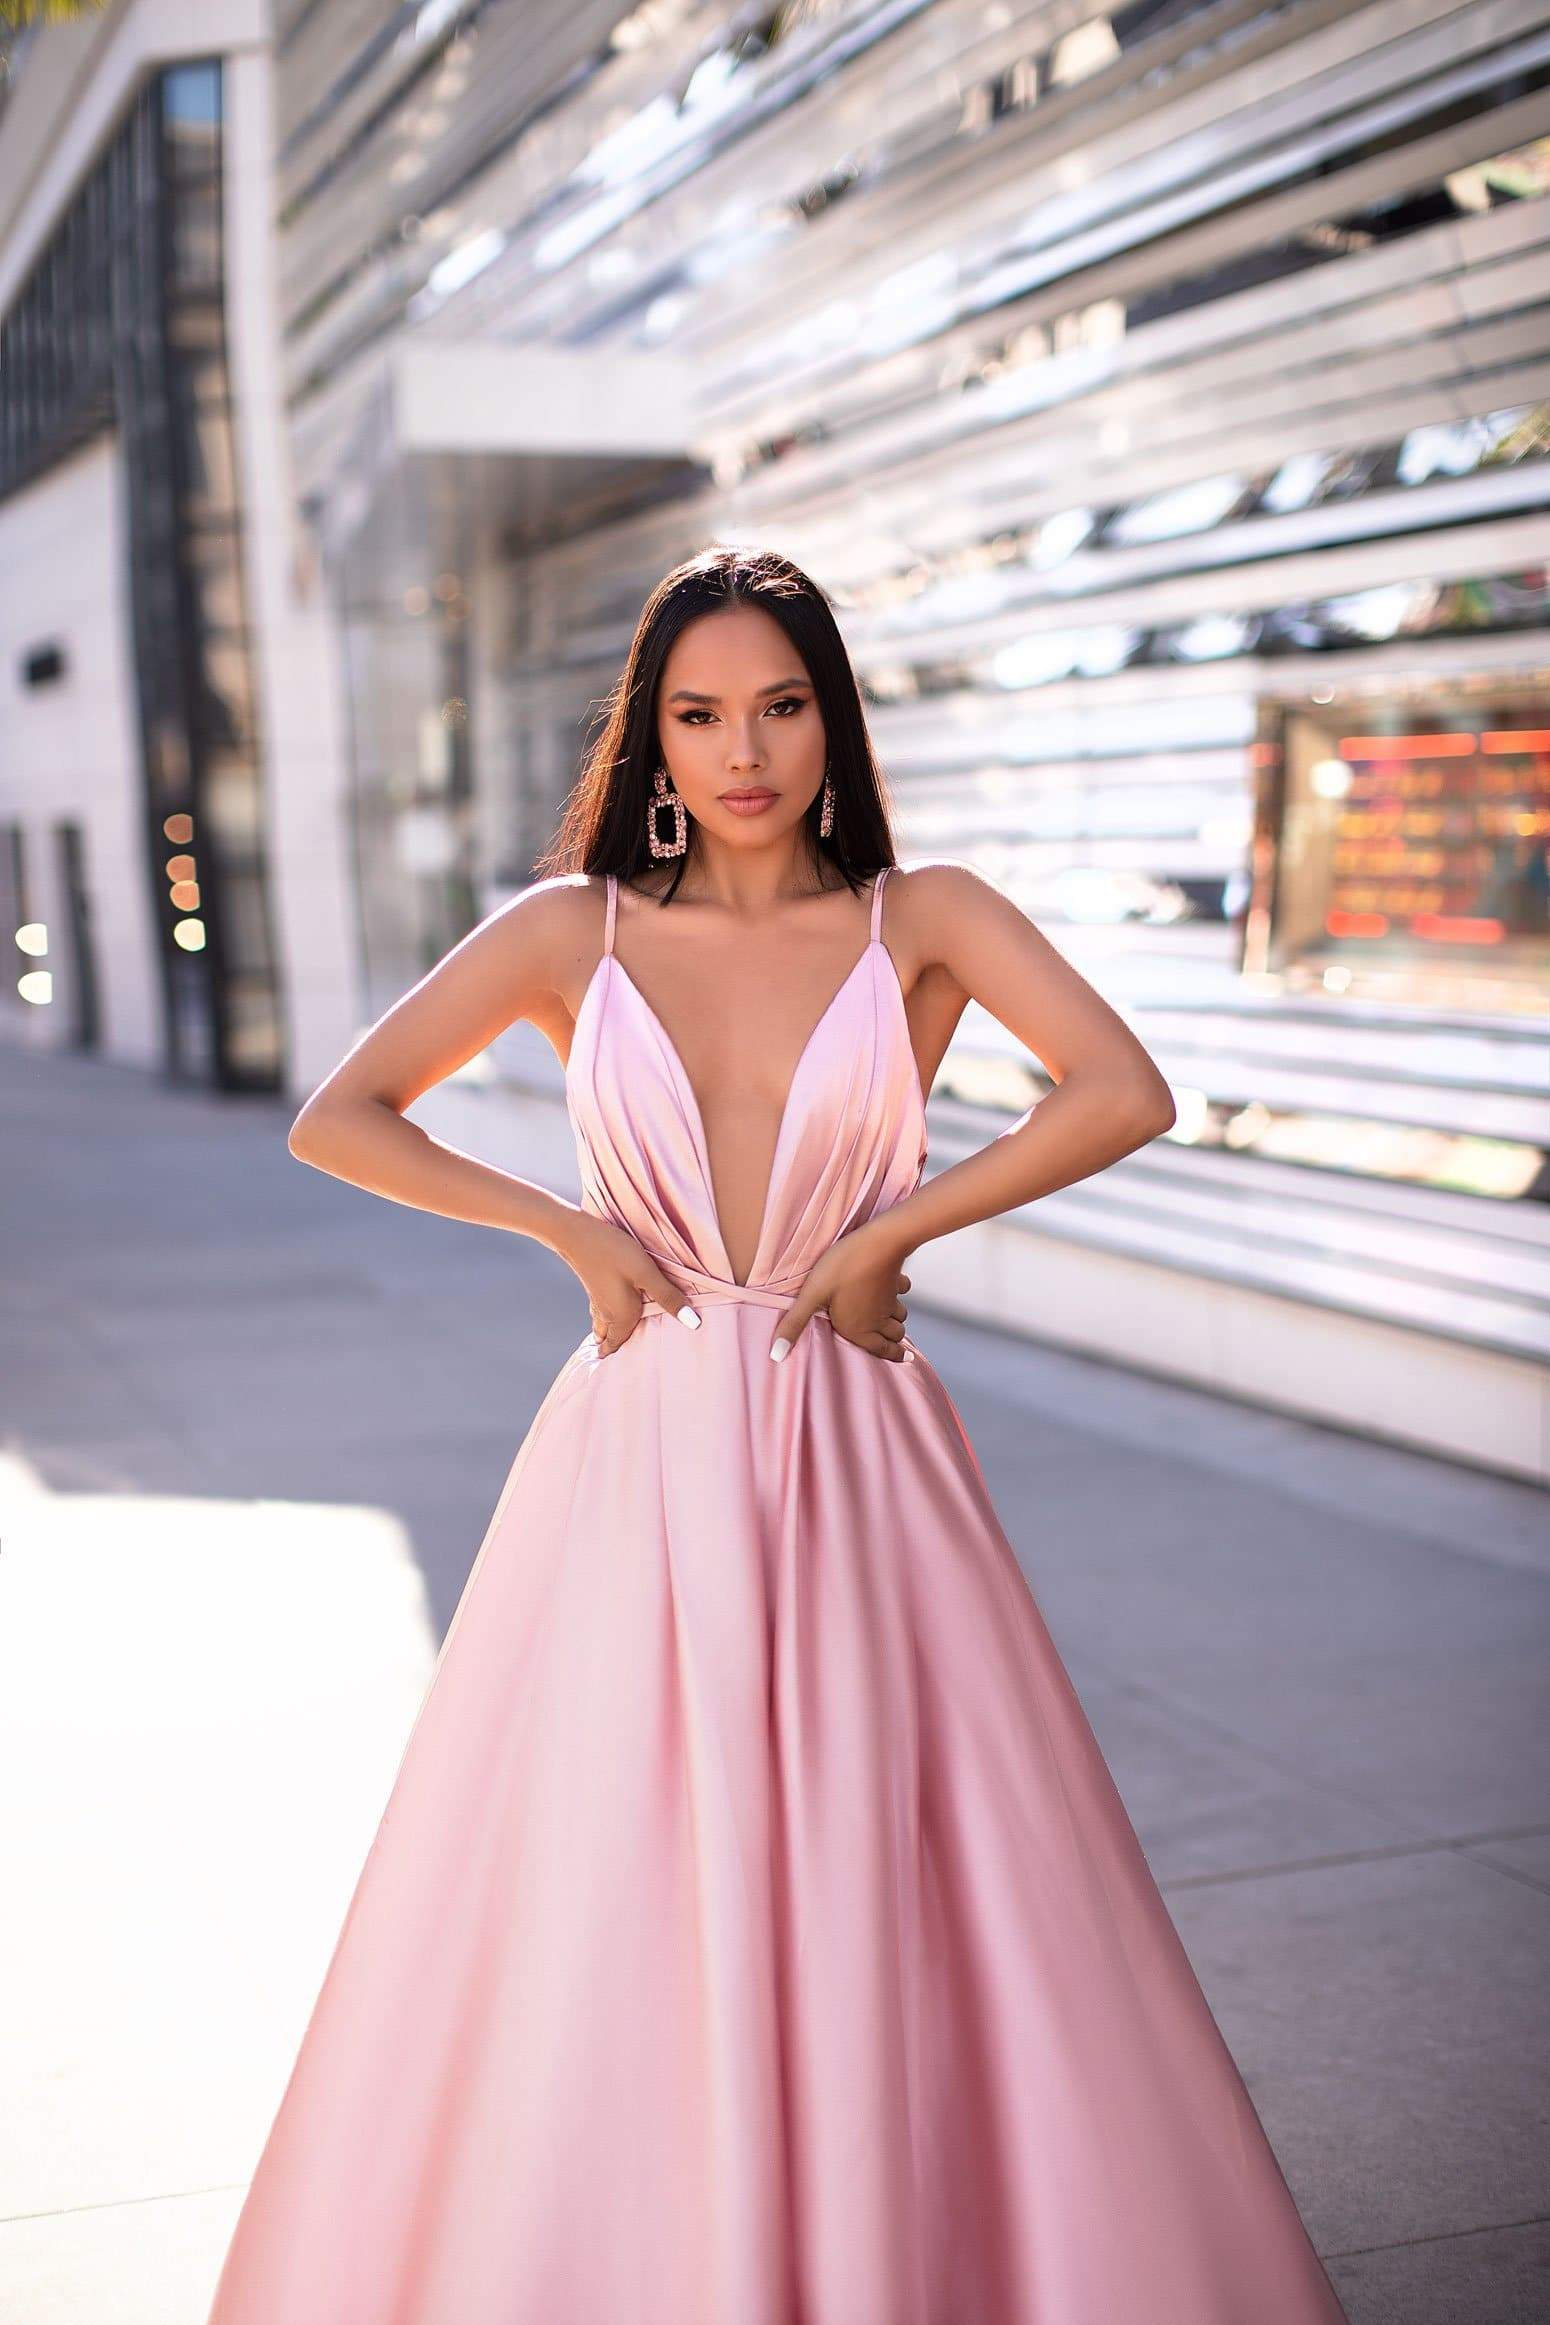 ebc147359b1 A N Luxe Ayana Gown - Baby Pink Satin With V Neck   Long Train – A N ...